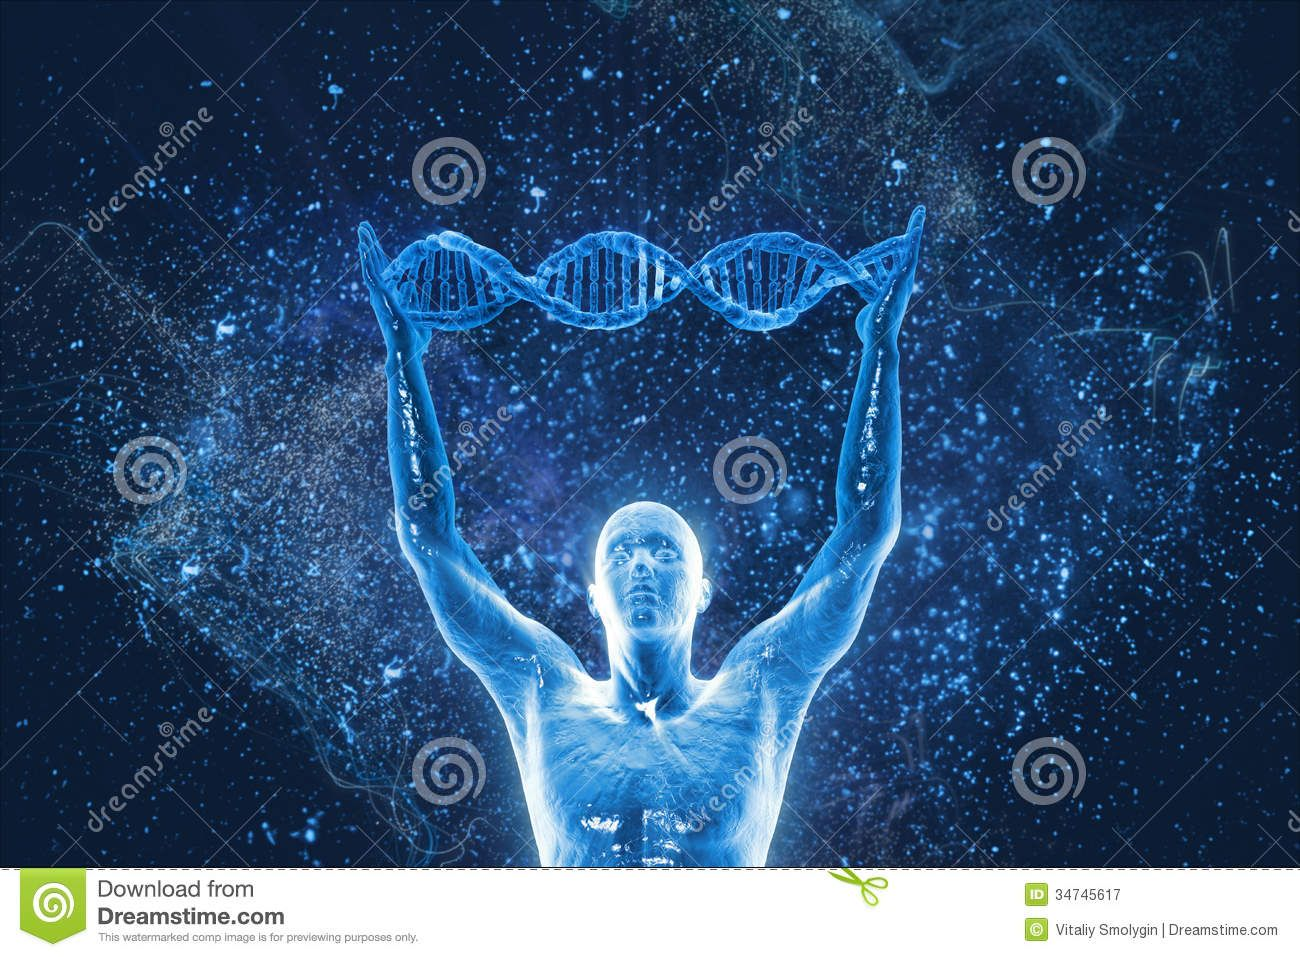 DNA - Google Search